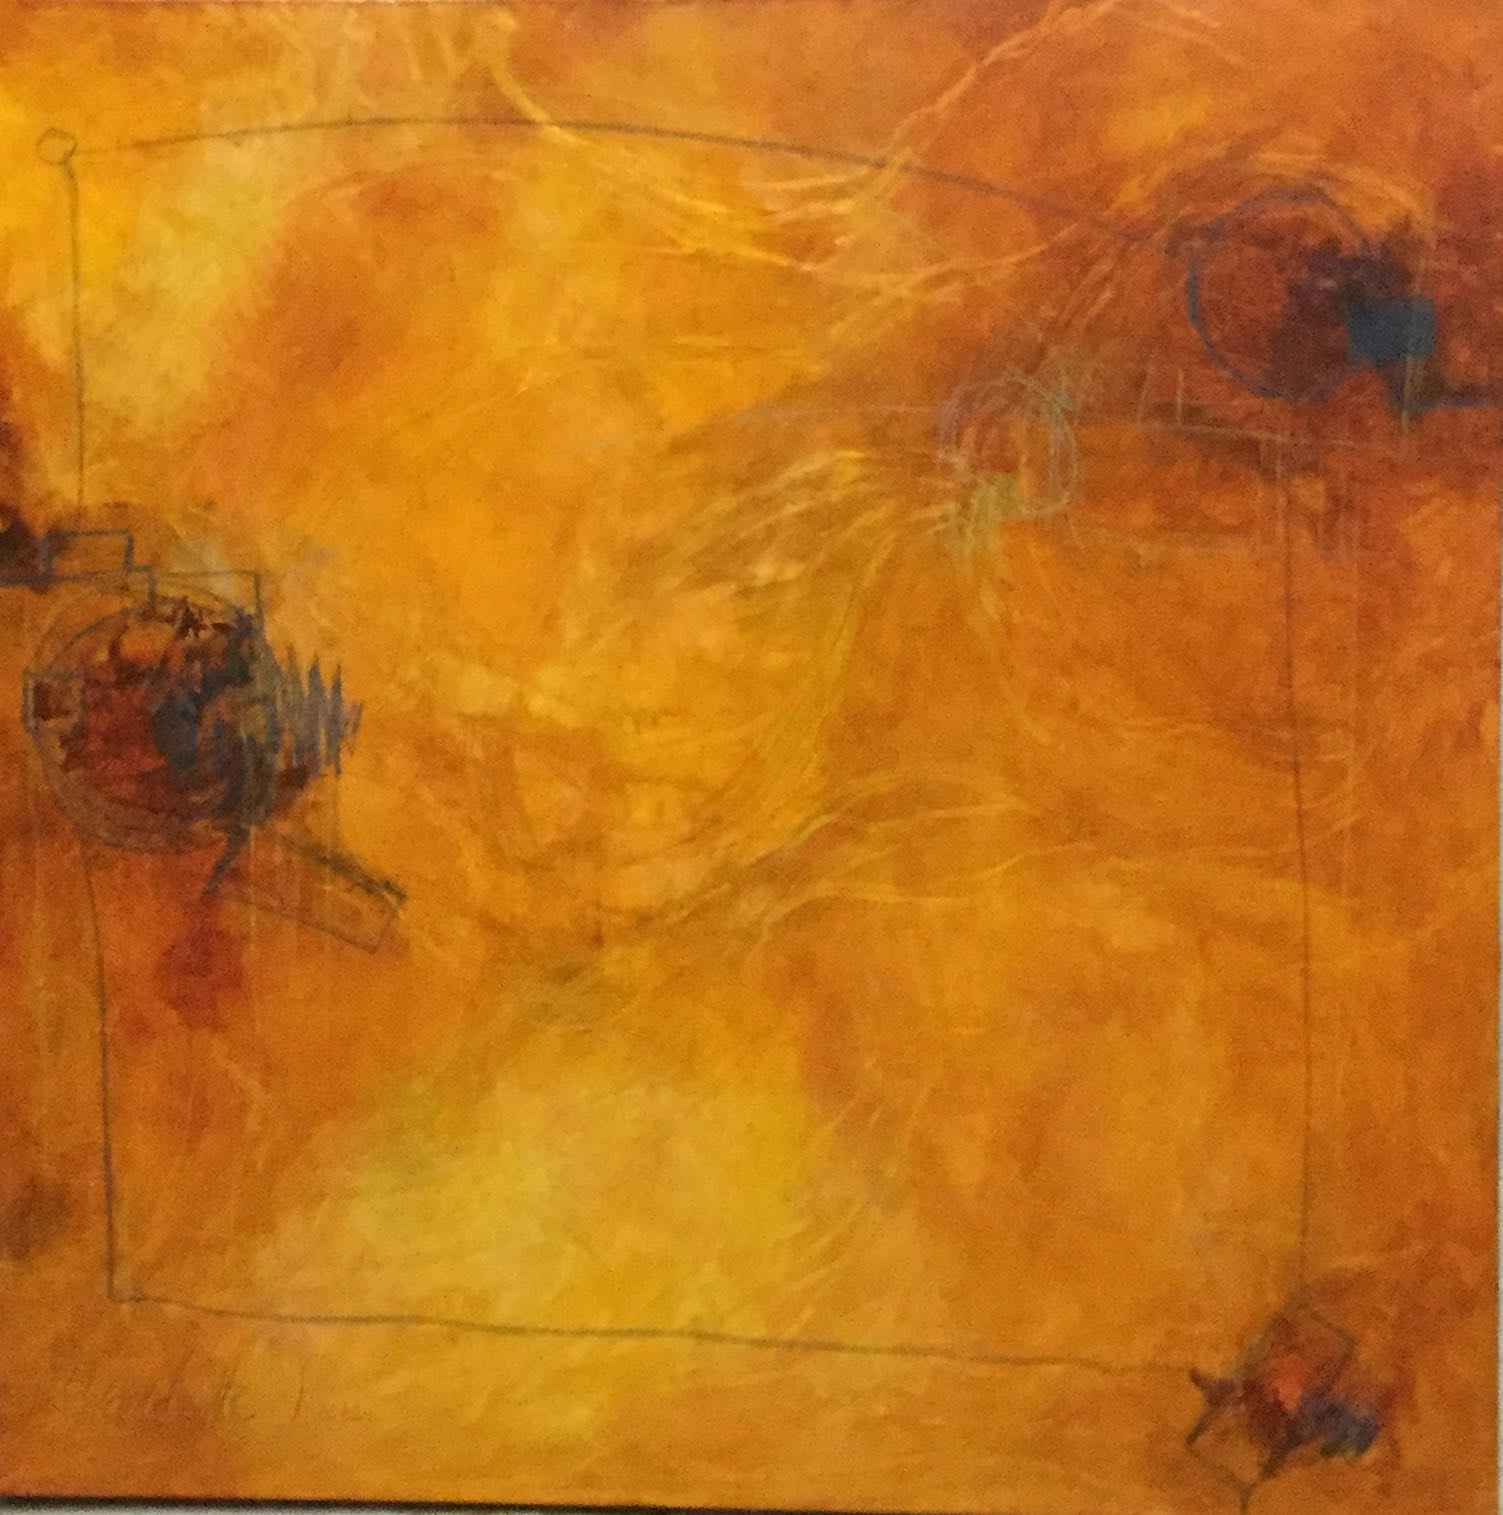 Rock Collection: Agat... by  Claudette Lee-Roseland - Masterpiece Online